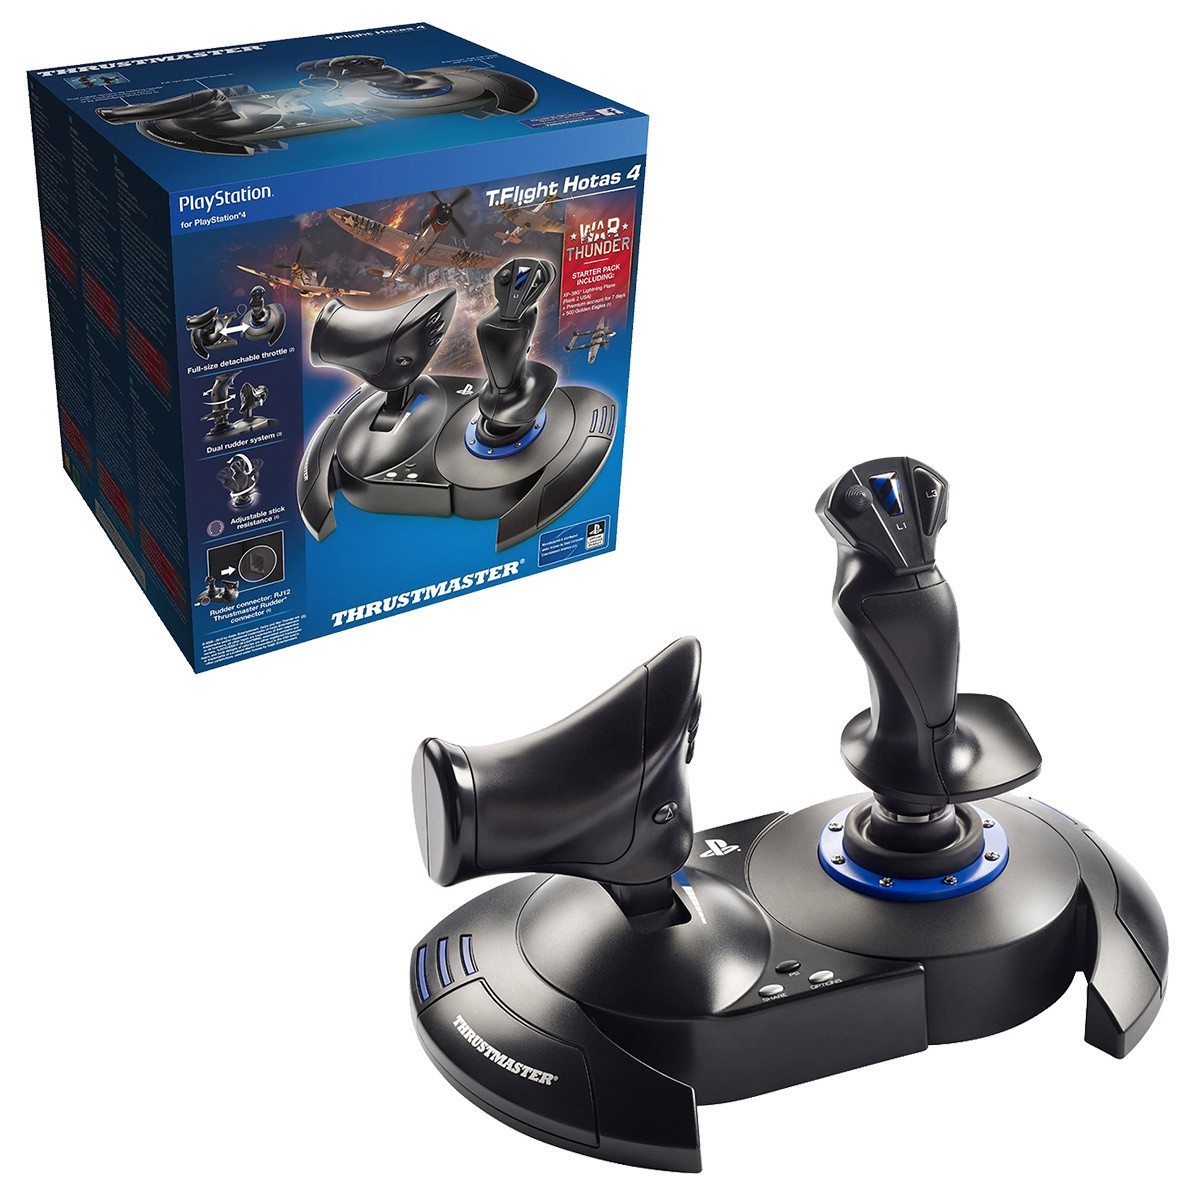 Joystick Hotas 4 na Playstation 4